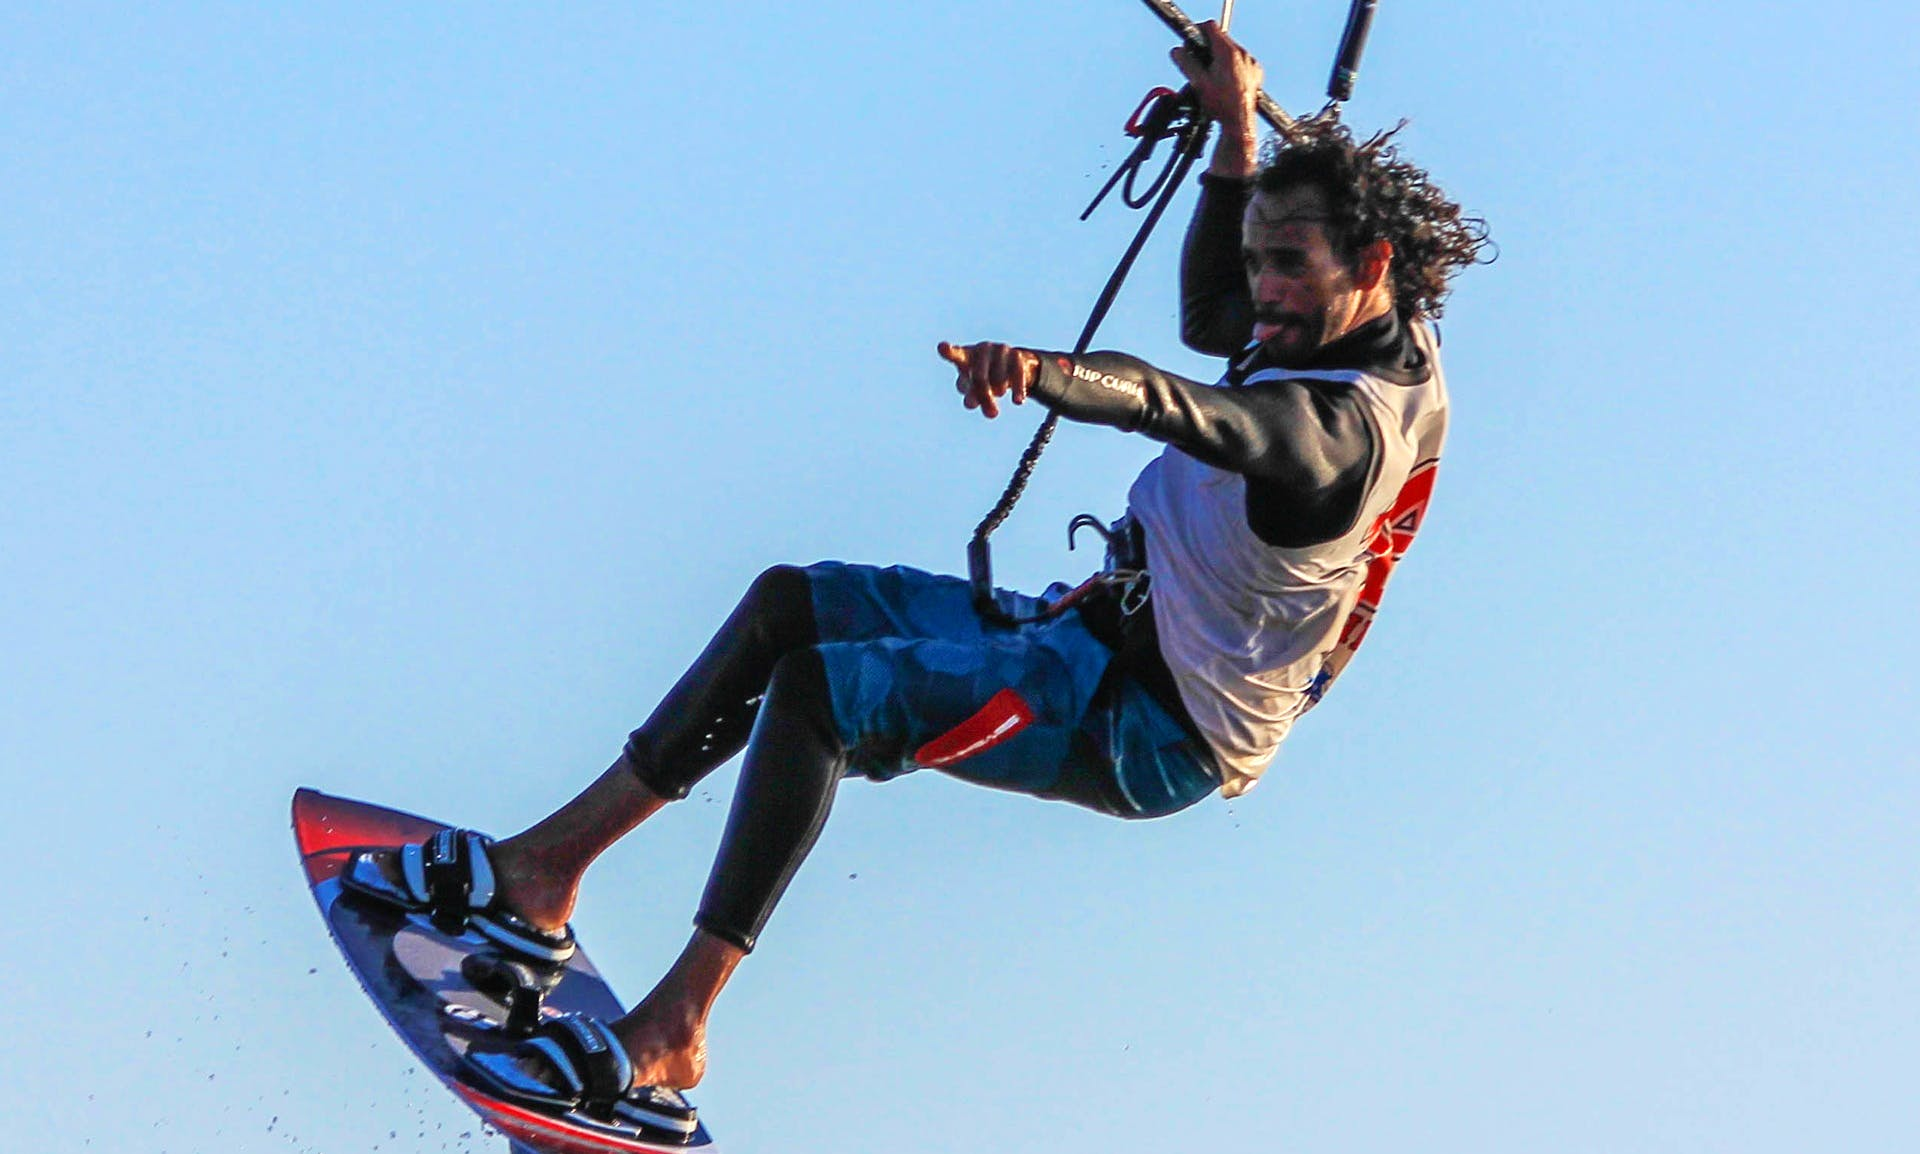 Kitesurfing Lessons and Rental in Essaouira, Morocco